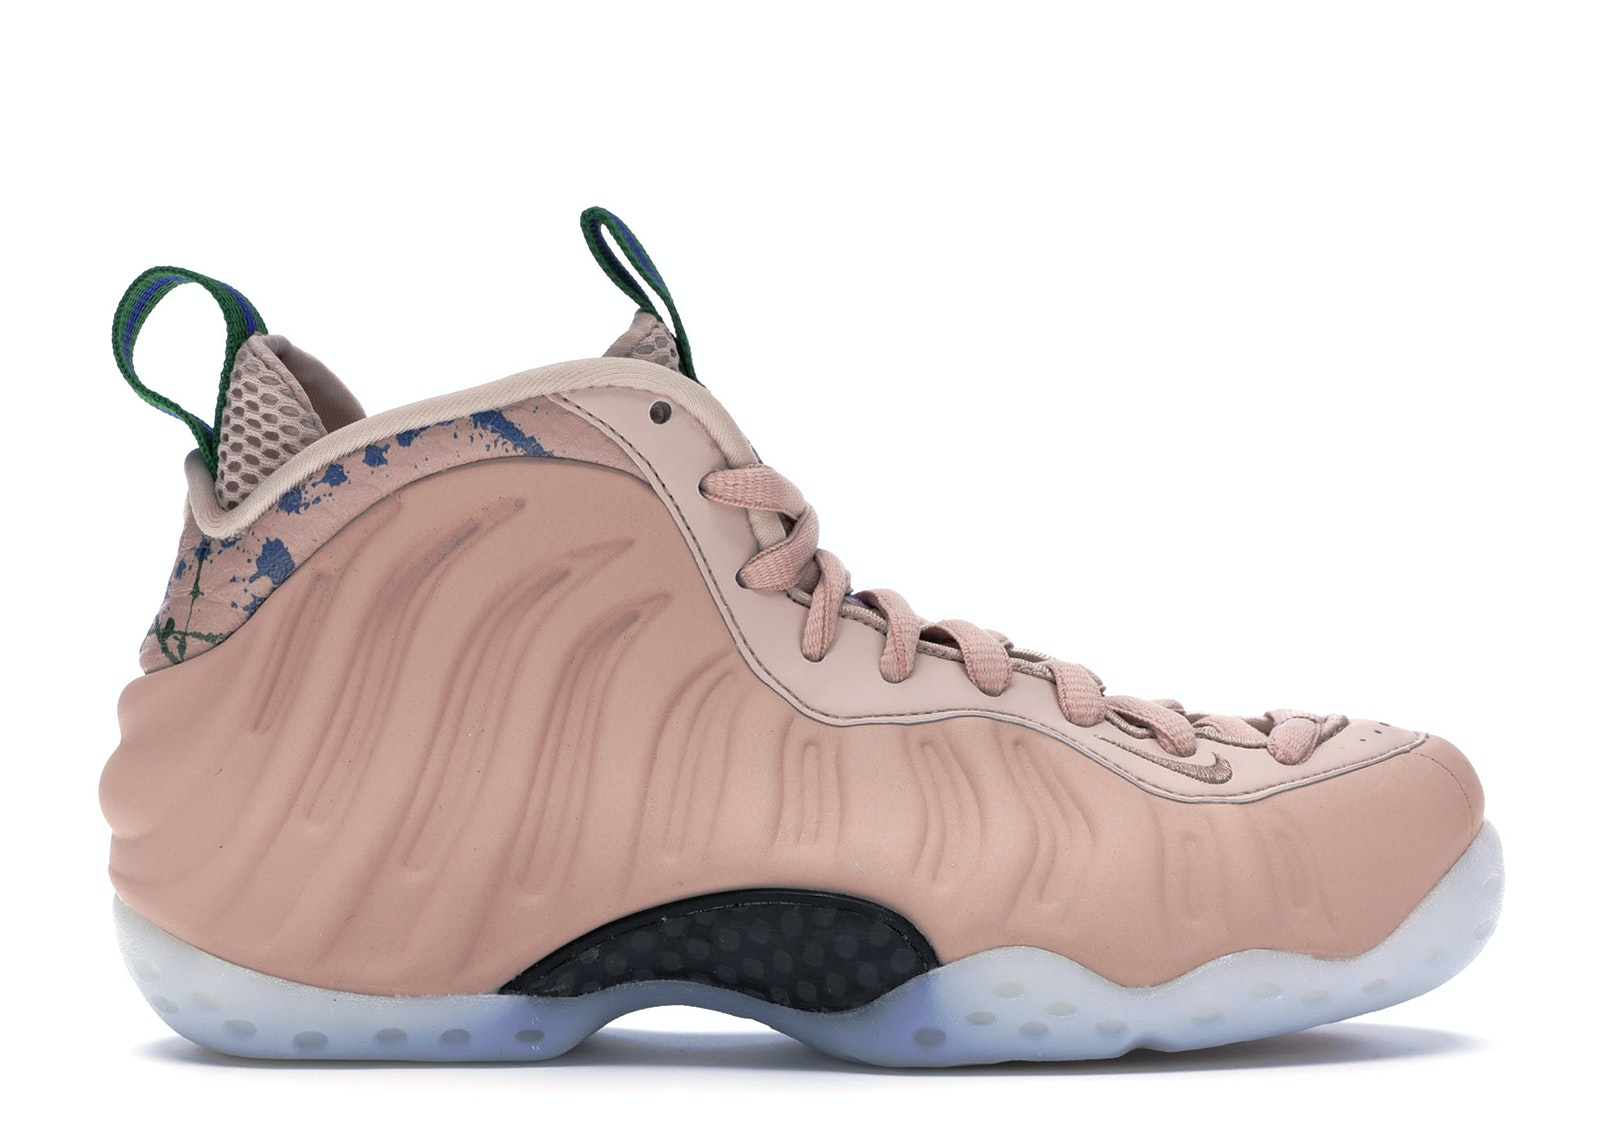 Nike Air Foamposite One Rust Pink? Fresh and Fly Clothing